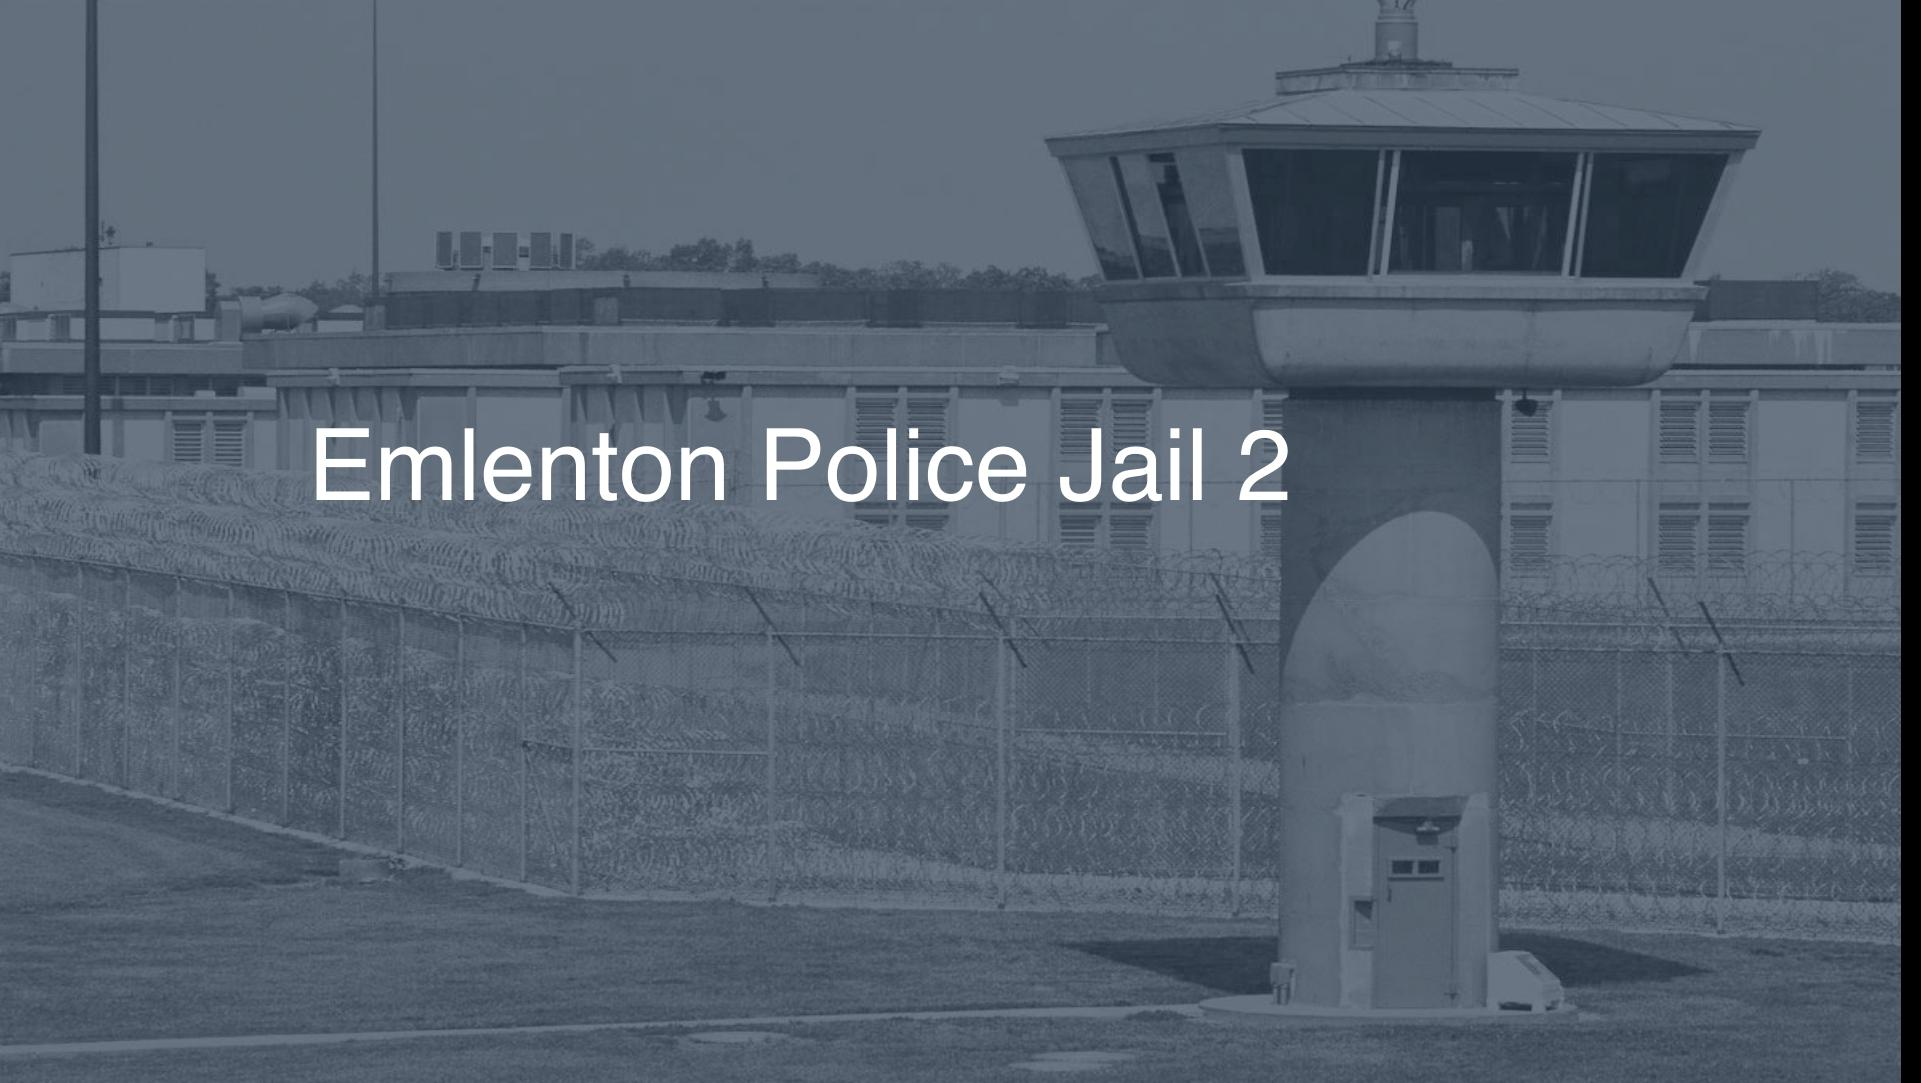 Emlenton Police Jail correctional facility picture